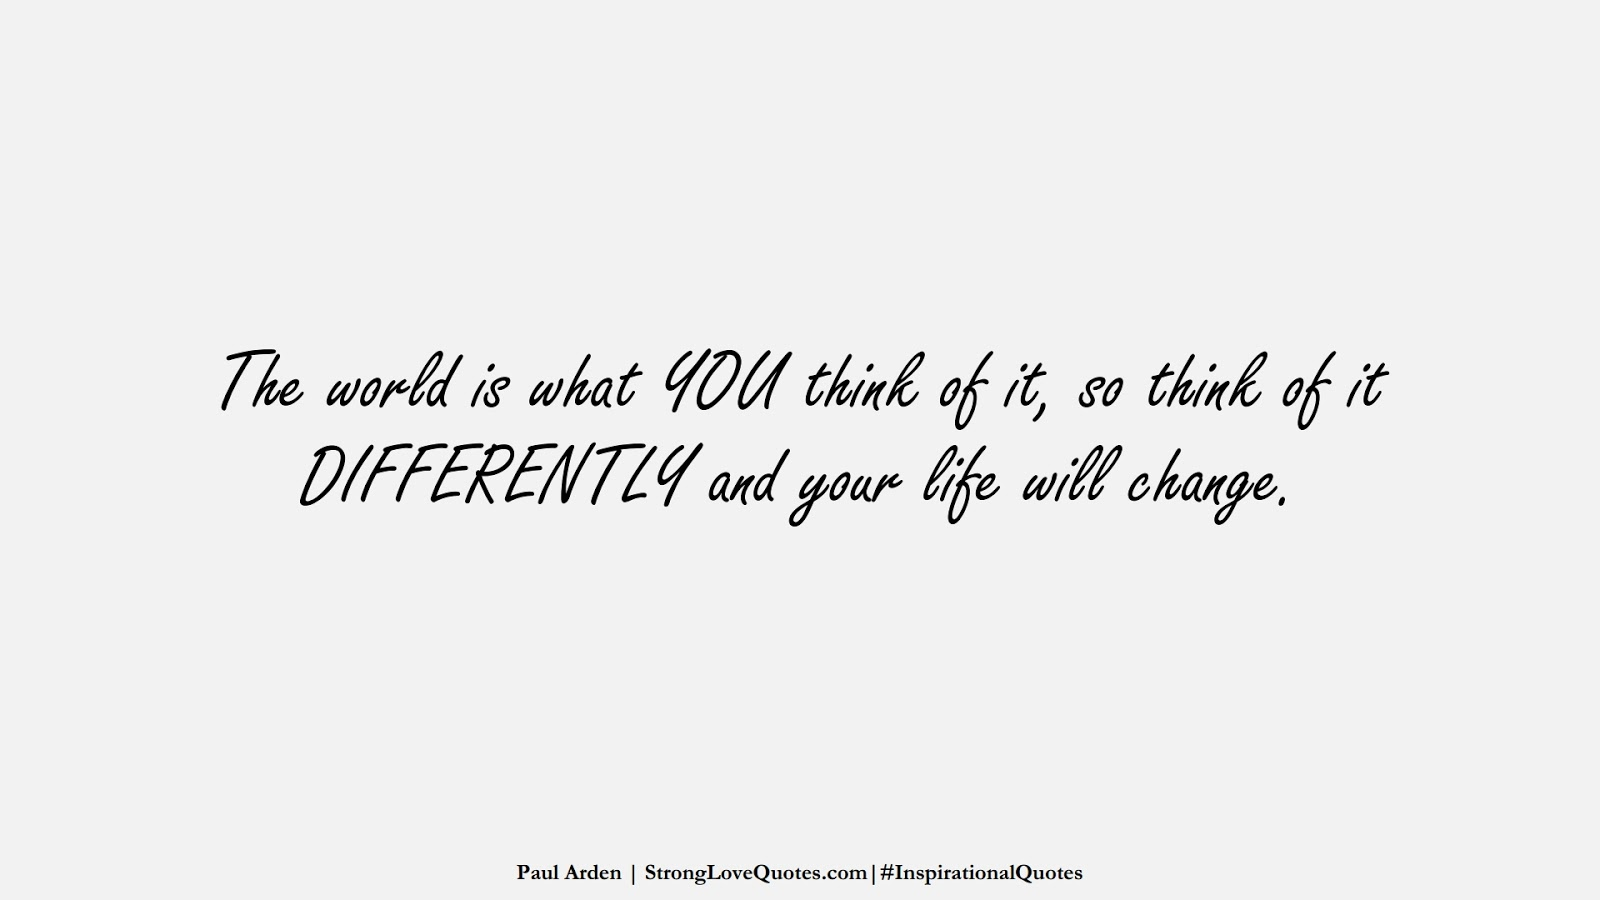 The world is what YOU think of it, so think of it DIFFERENTLY and your life will change. (Paul Arden);  #InspirationalQuotes